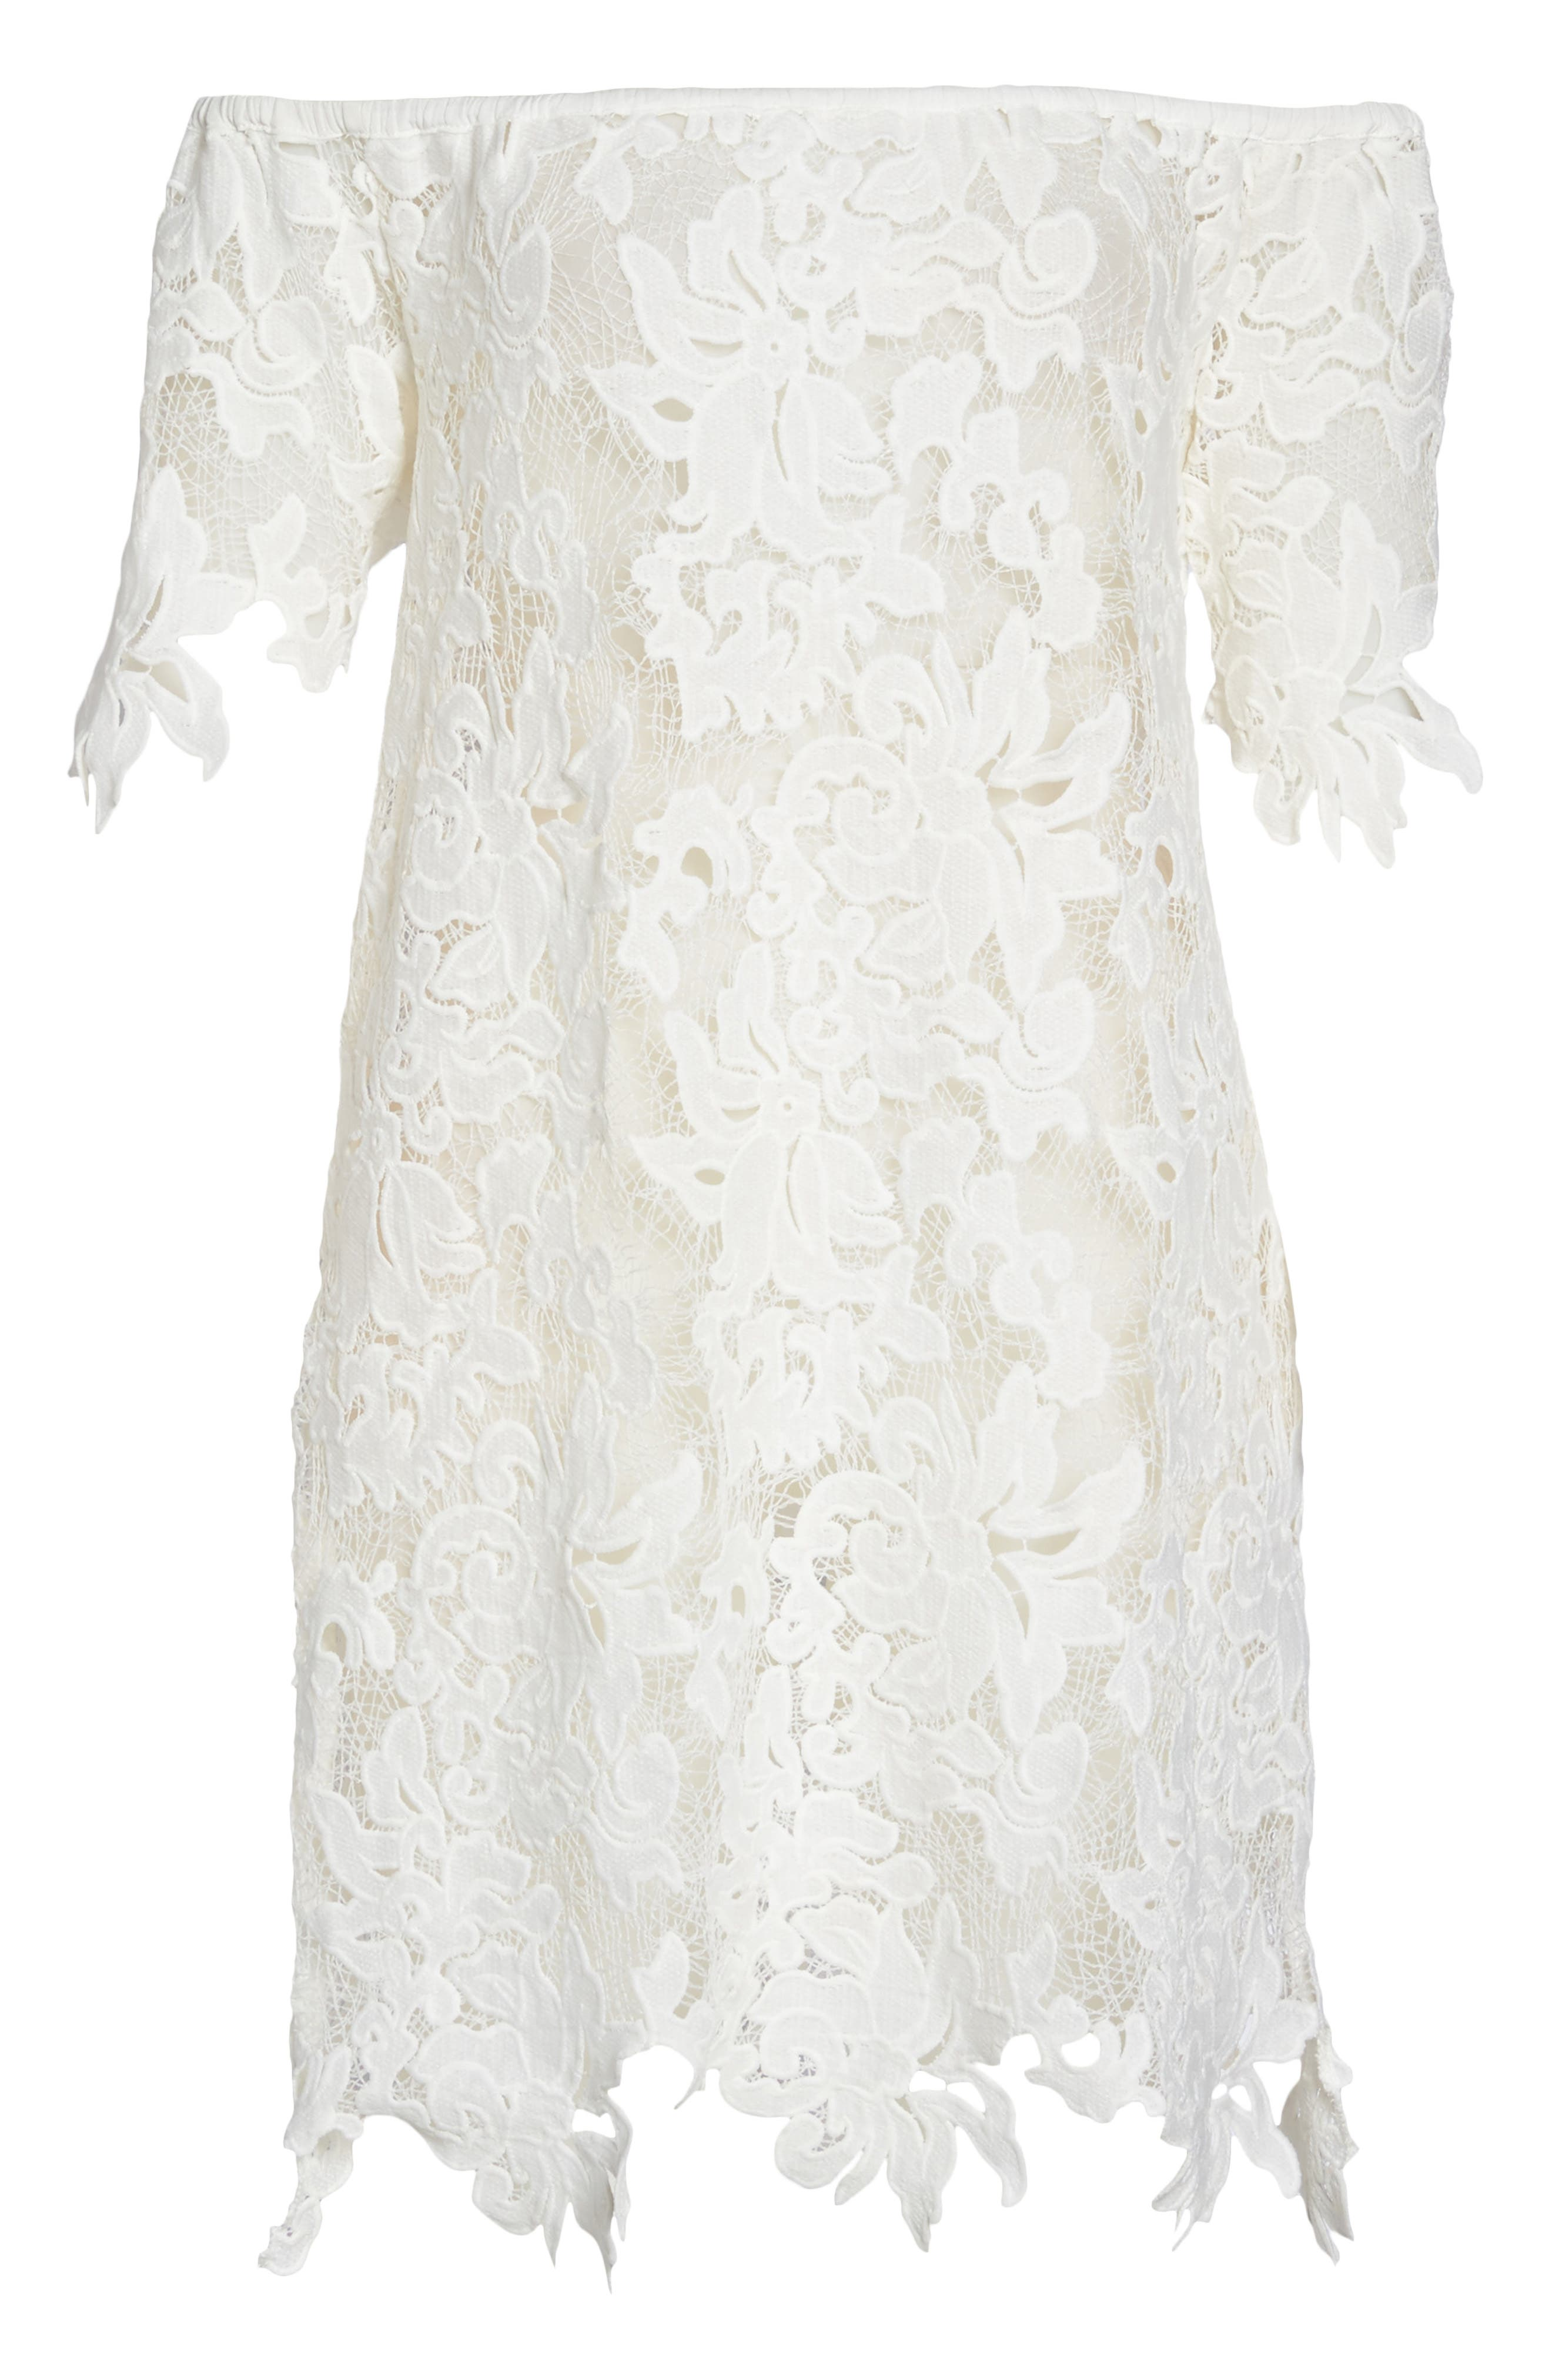 Ode Rosette Lace Cover-Up Dress,                             Alternate thumbnail 6, color,                             White